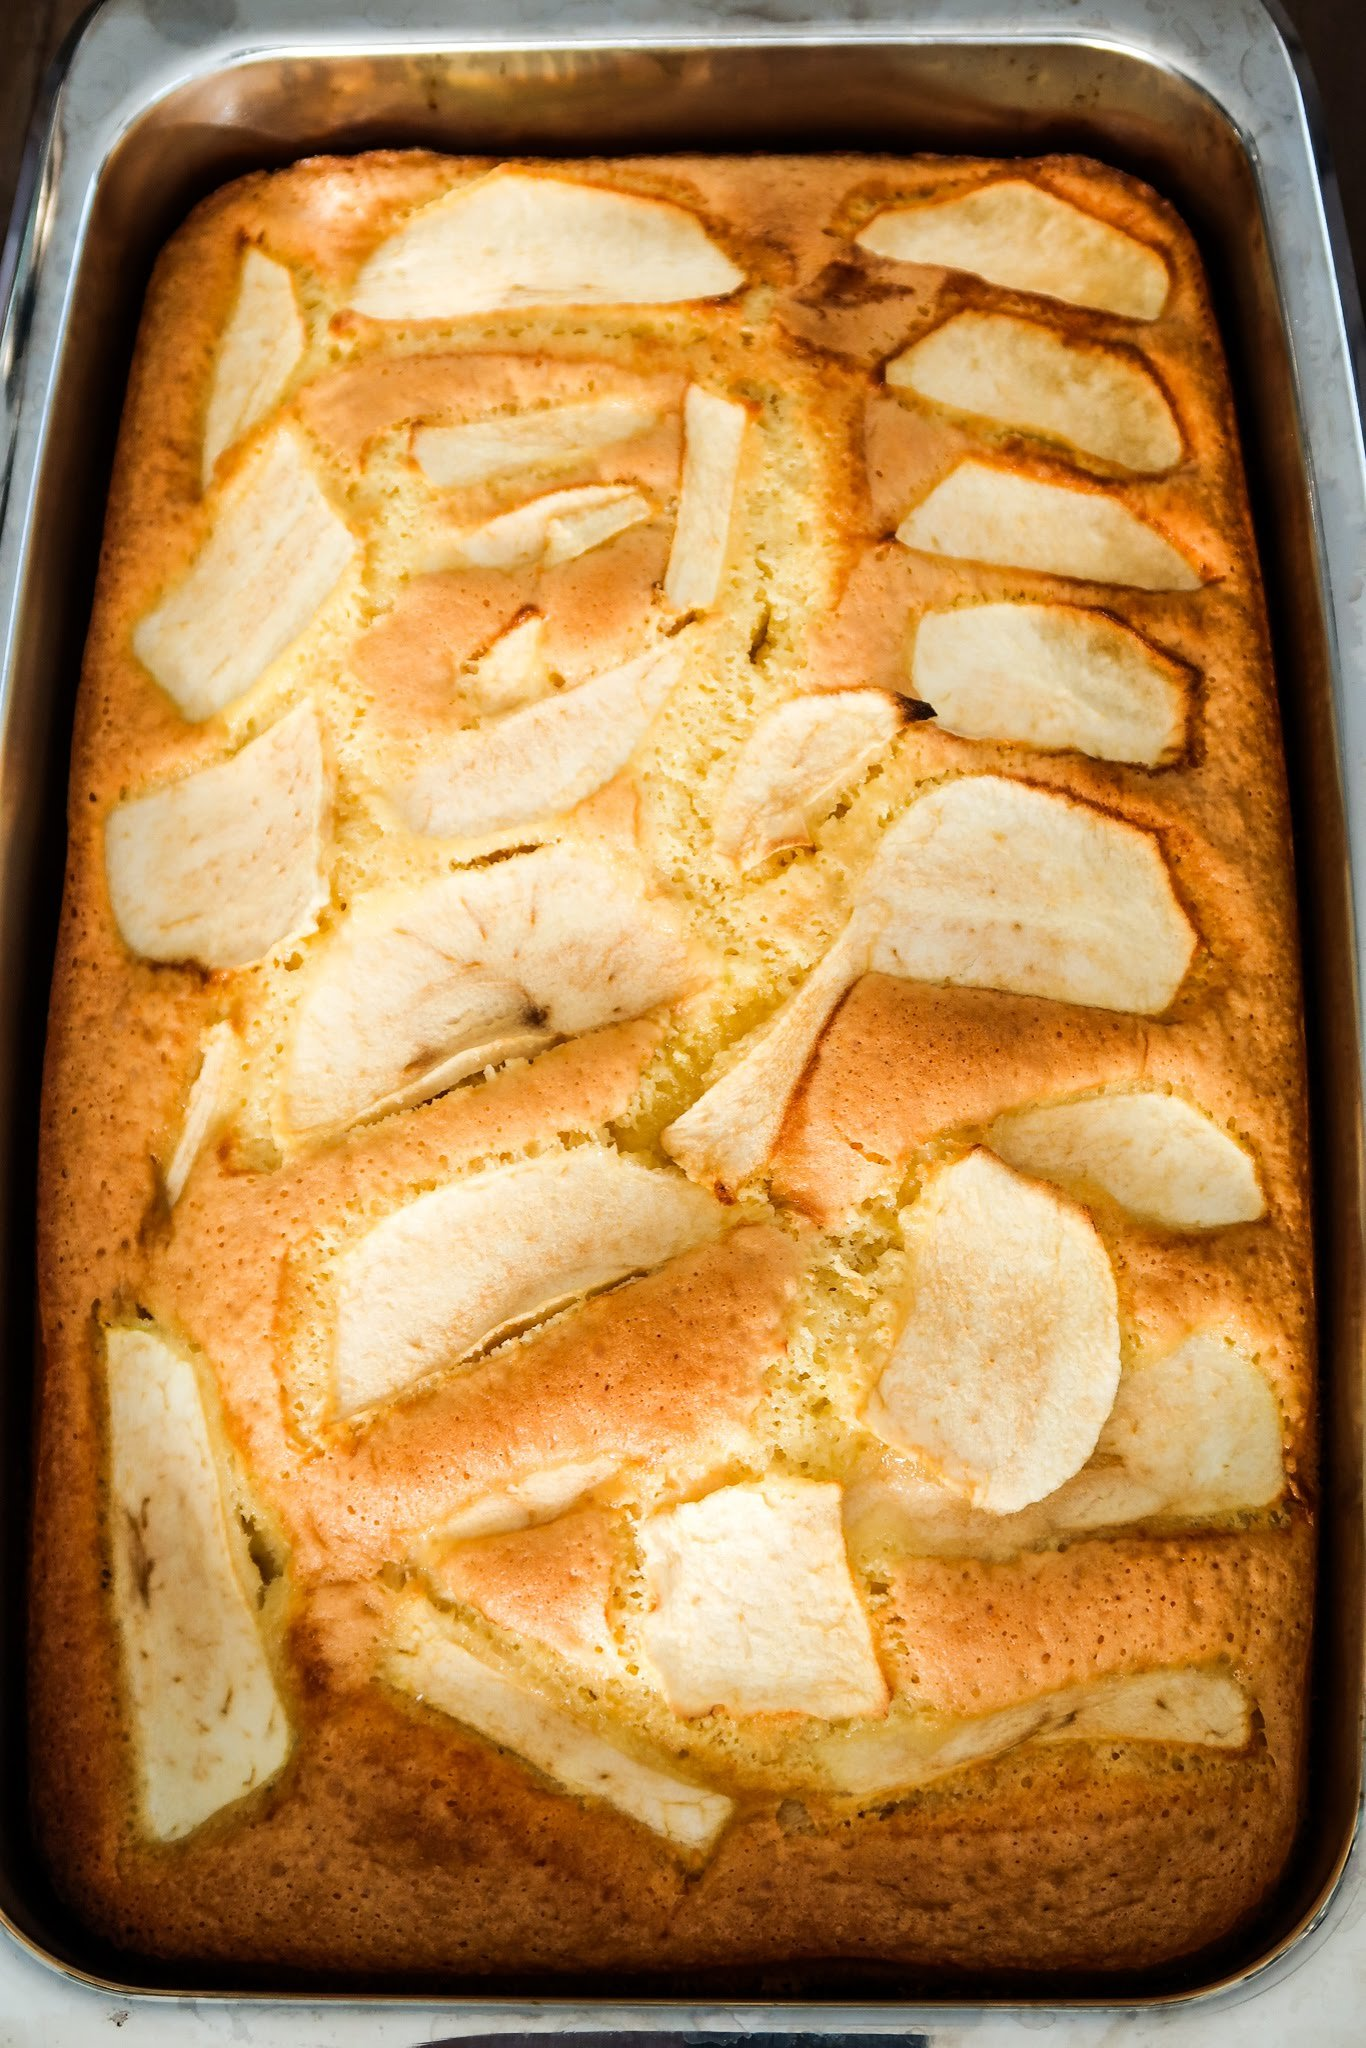 Homemade apple cake - easy apple dessert that is simple and easily customizable! This easy apple recipe is great for dessert or breakfast with your morning coffee or tea!